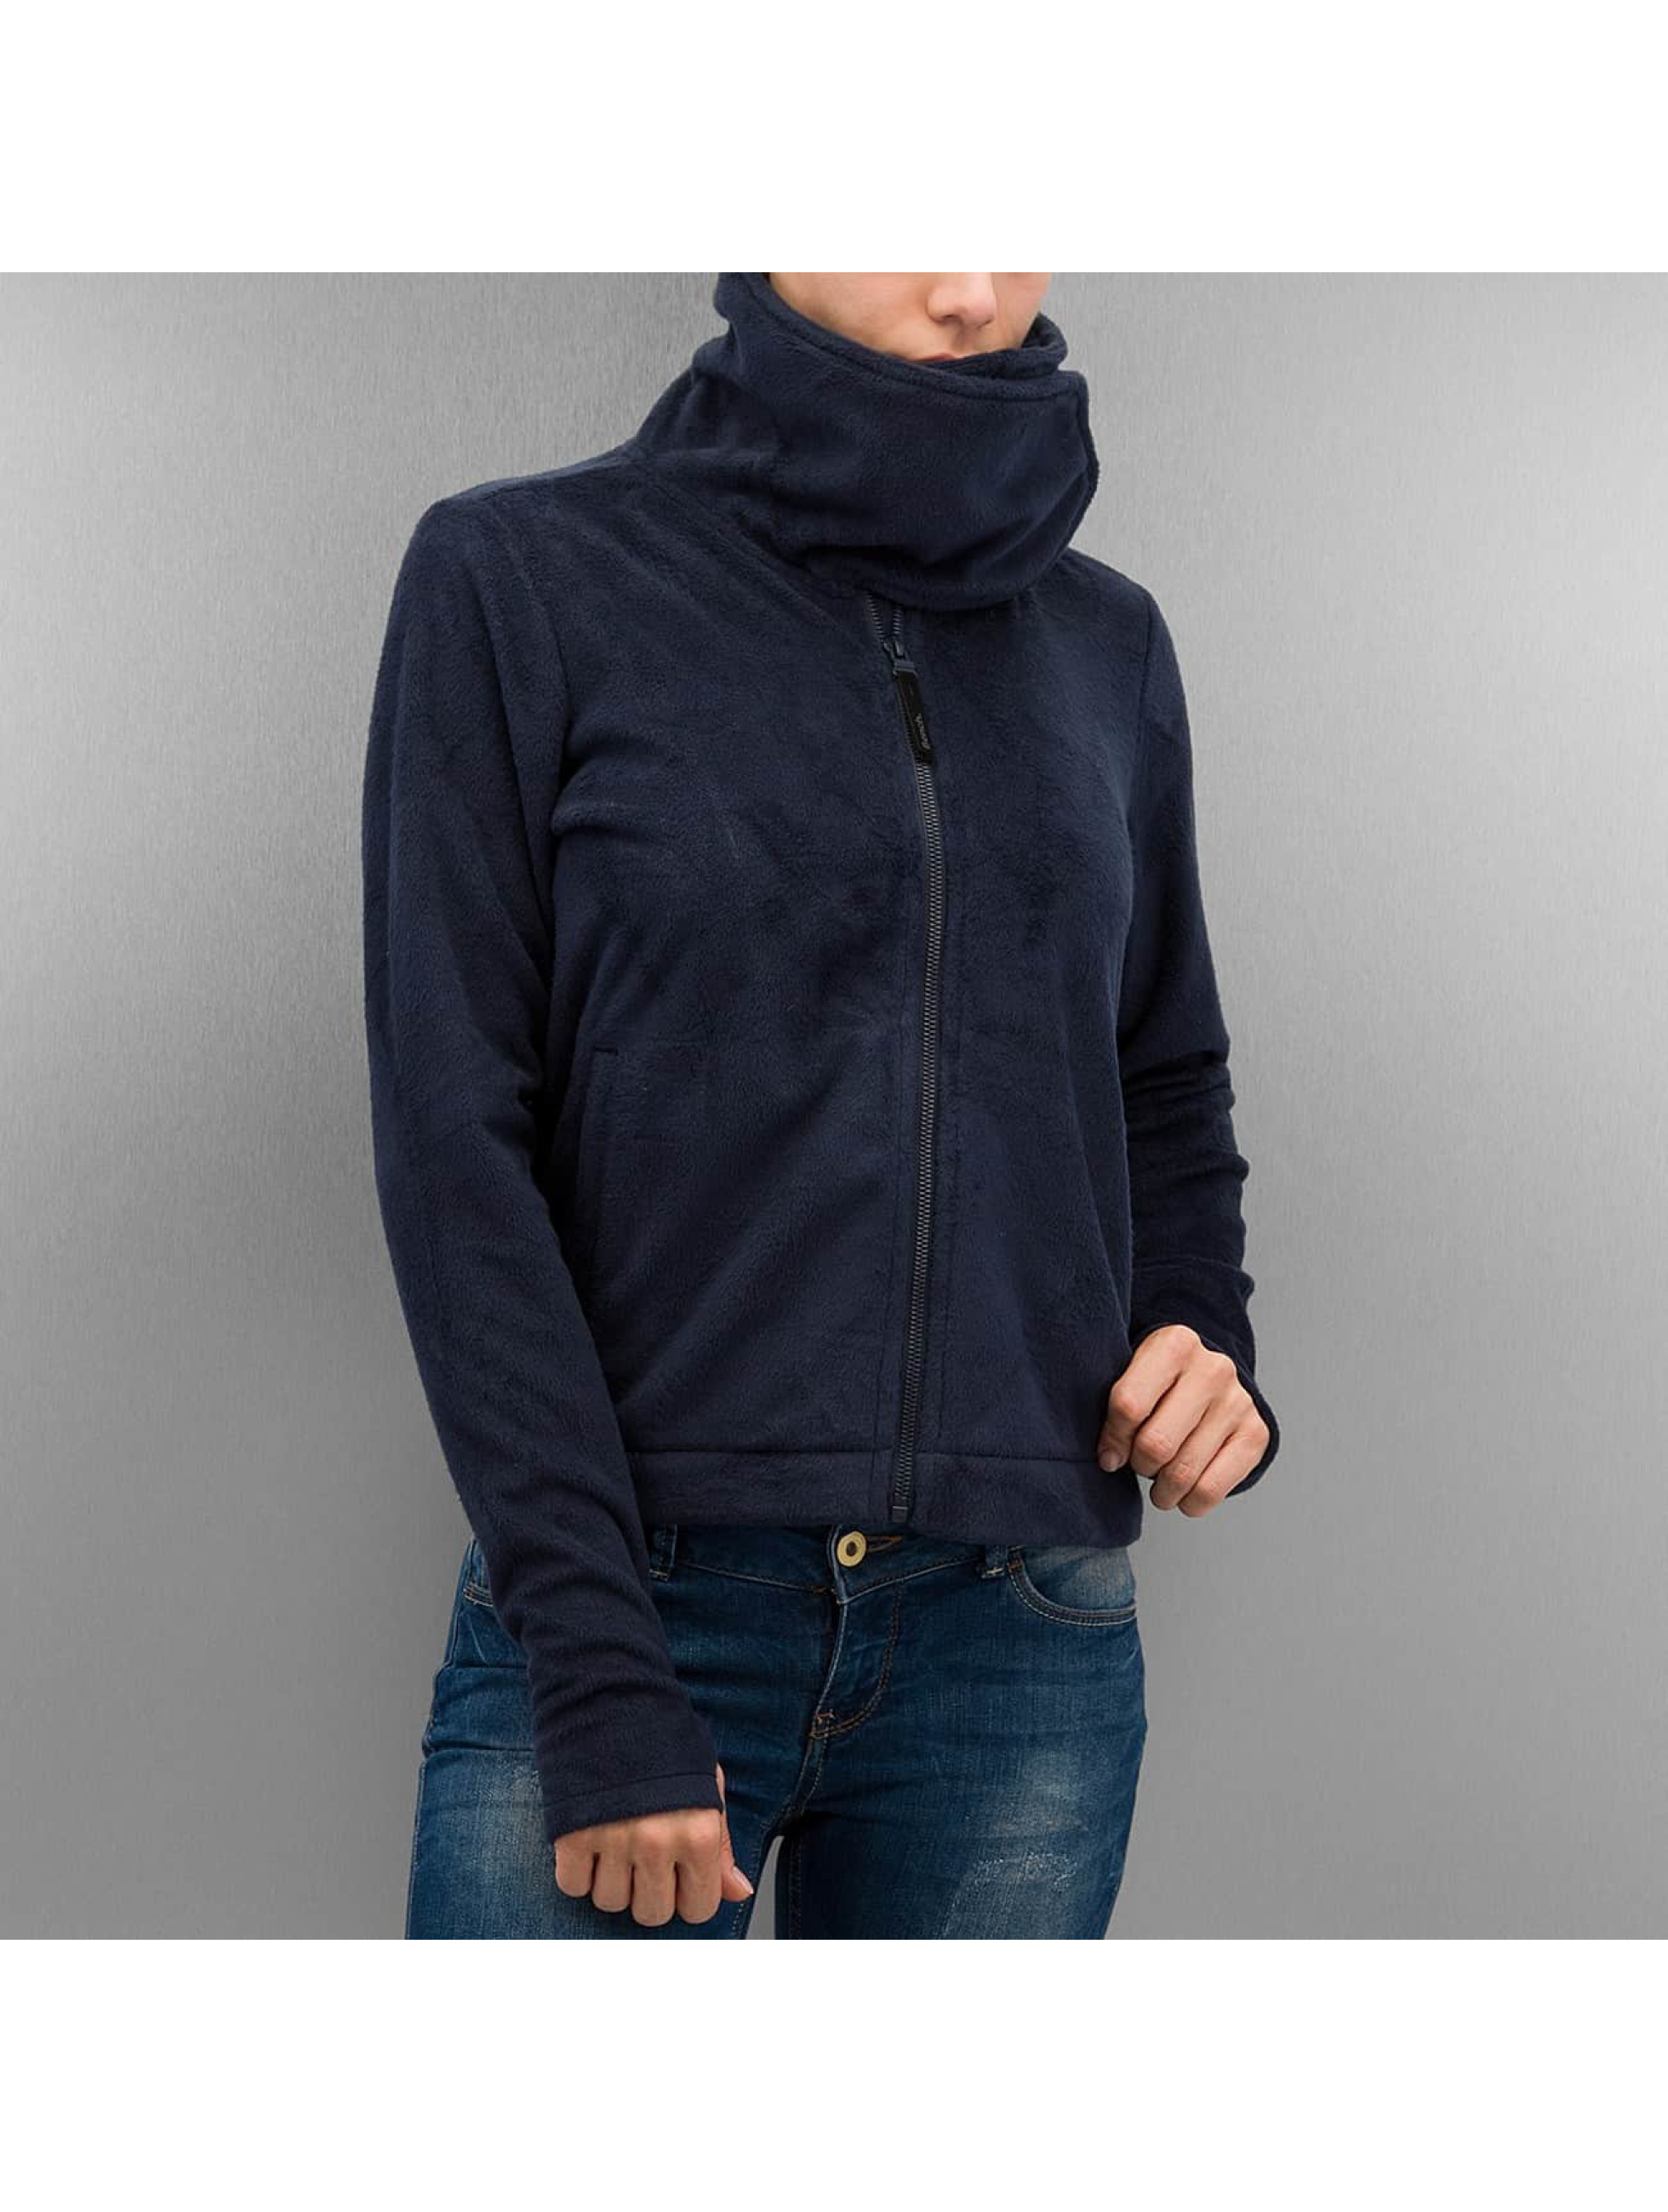 Bench Lightweight Jacket Difference Fleece Jacket blue